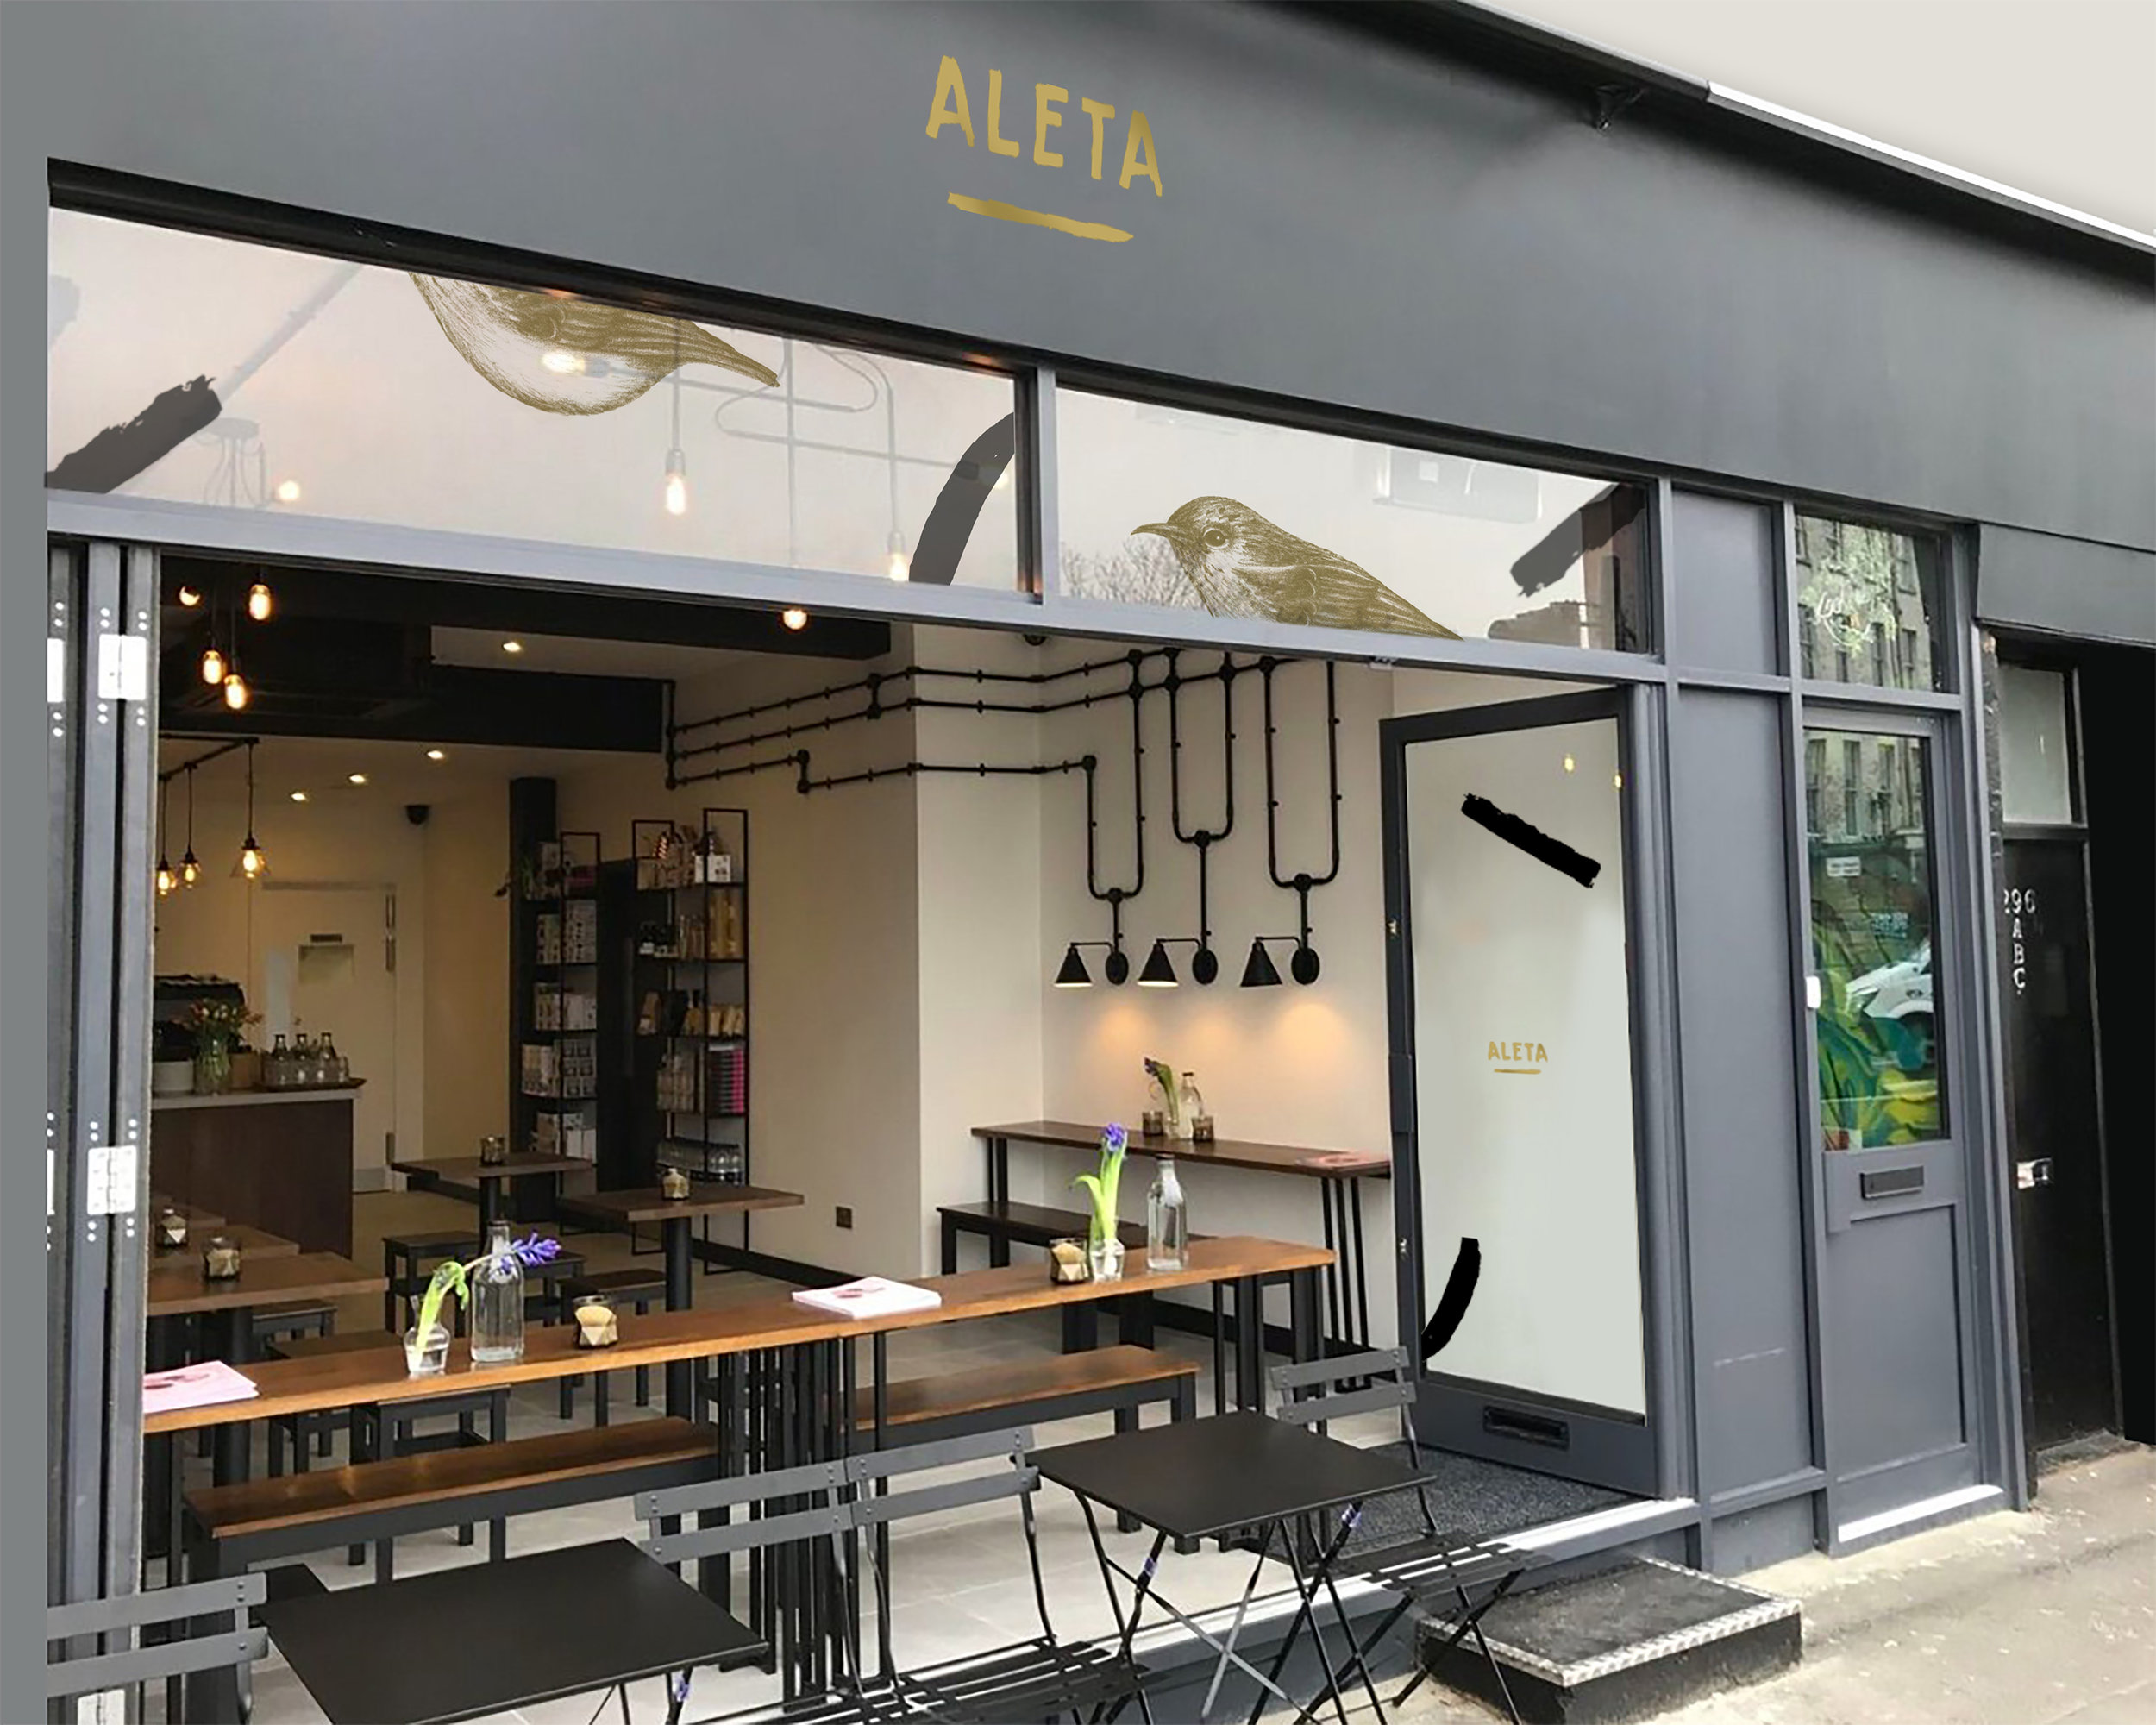 Aleta-Restaurant-Branding_Shop-front_Spacial-Design.jpg